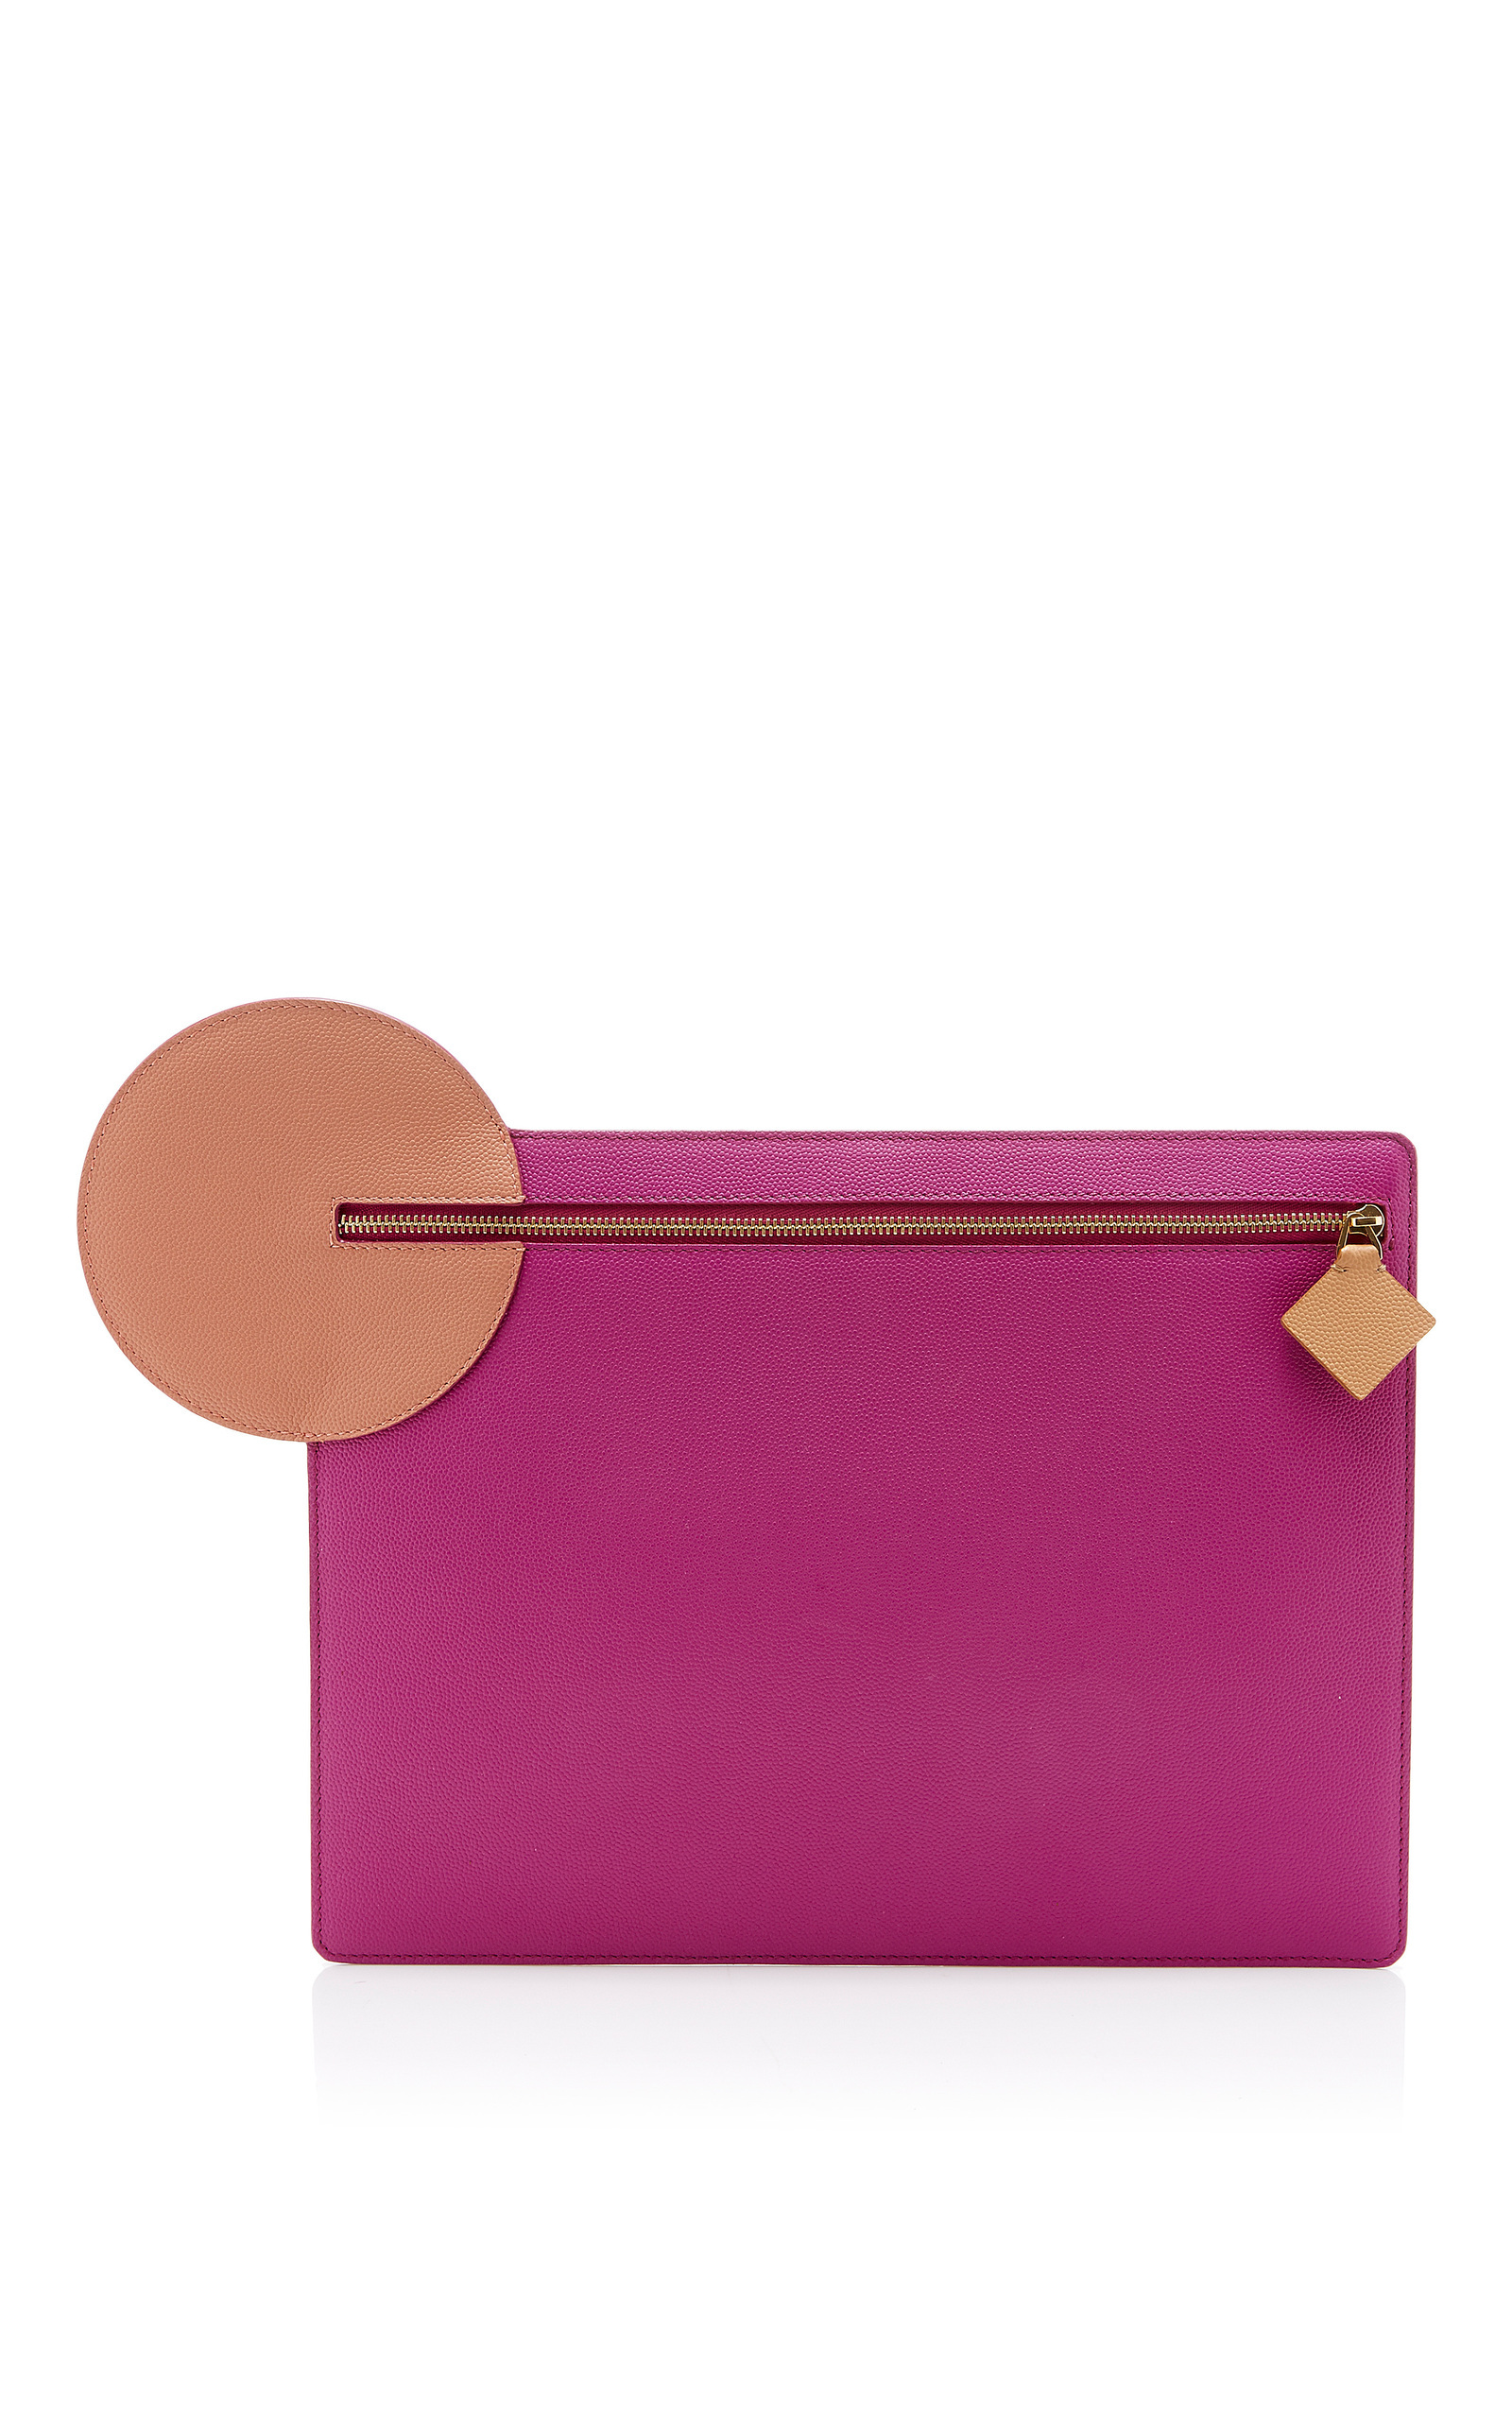 ROKSANDA Alpin Pebbled-Leather Clutch in Additional Details Will Be Added When The Item Arrives In Stock